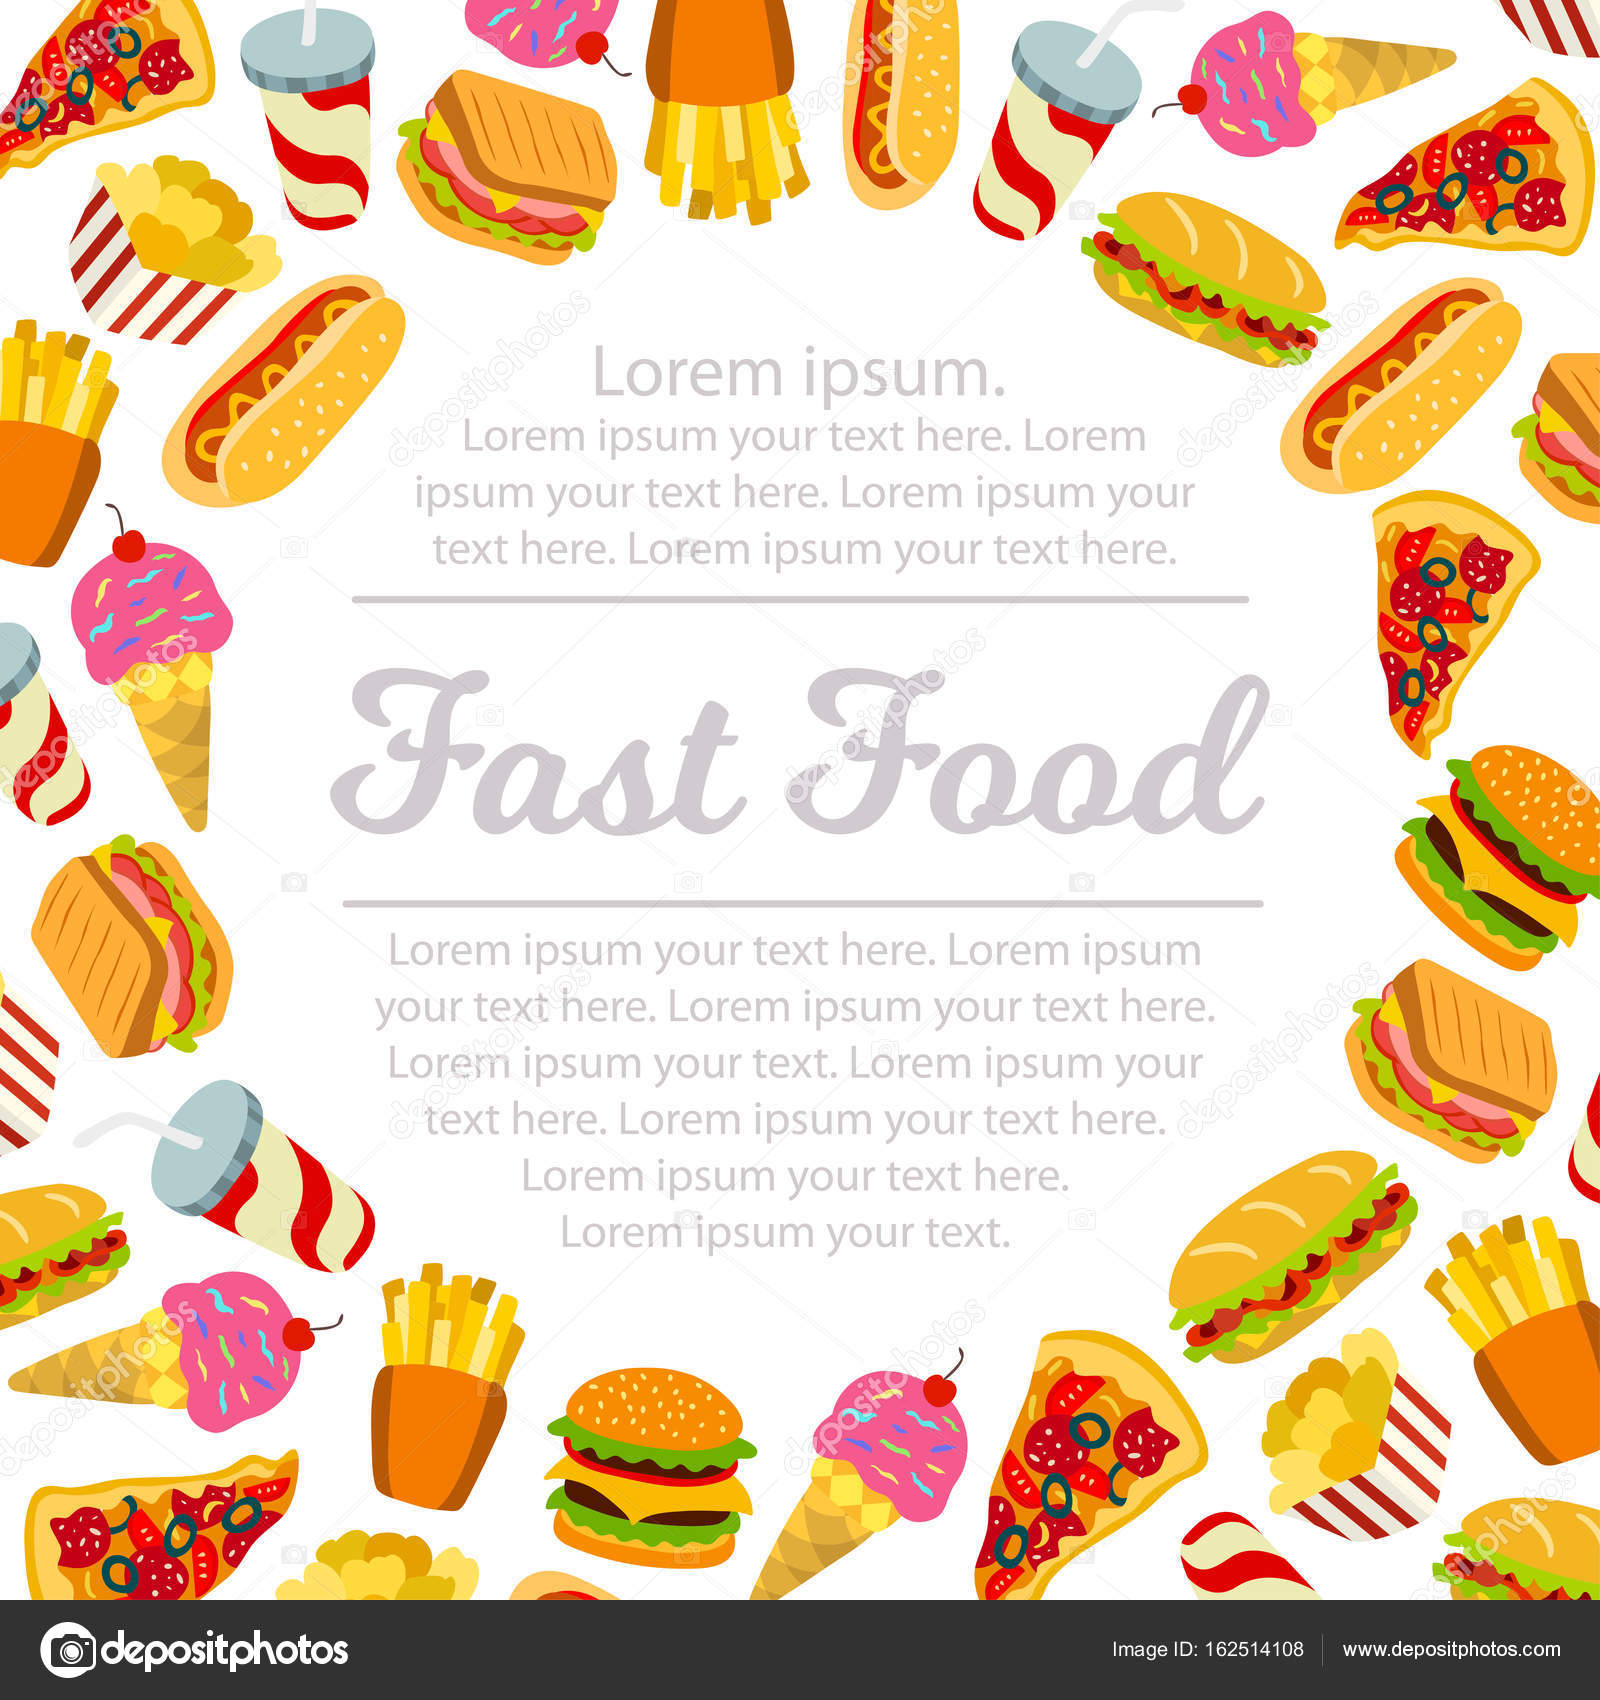 Fast Food Vector Frame. — Stock Vector © Marina_Mandarina #162514108